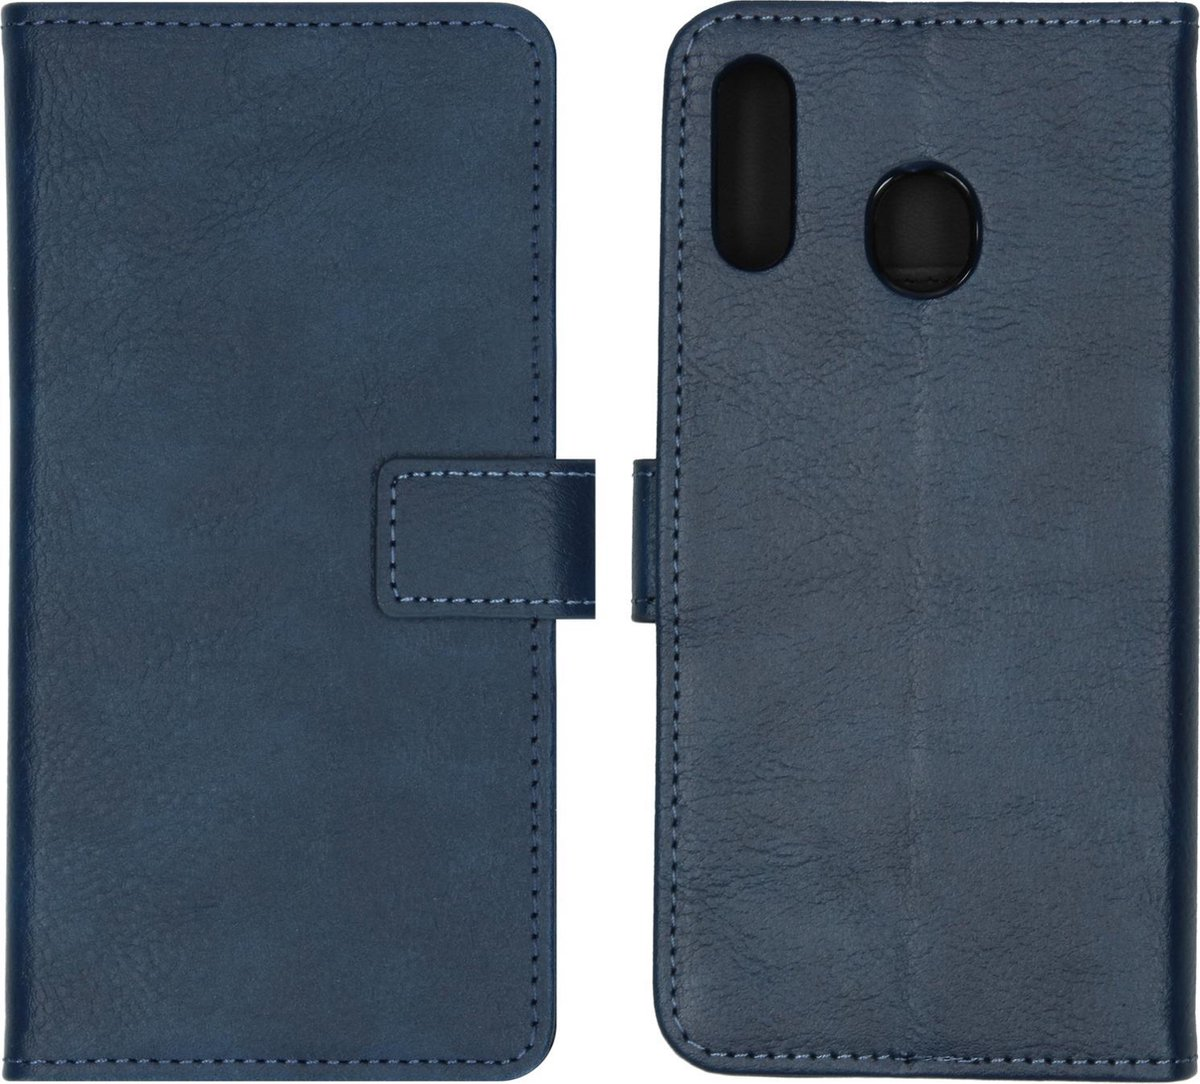 Afbeelding van product iMoshion Luxe Booktype Samsung Galaxy M20 Power hoesje - Blauw